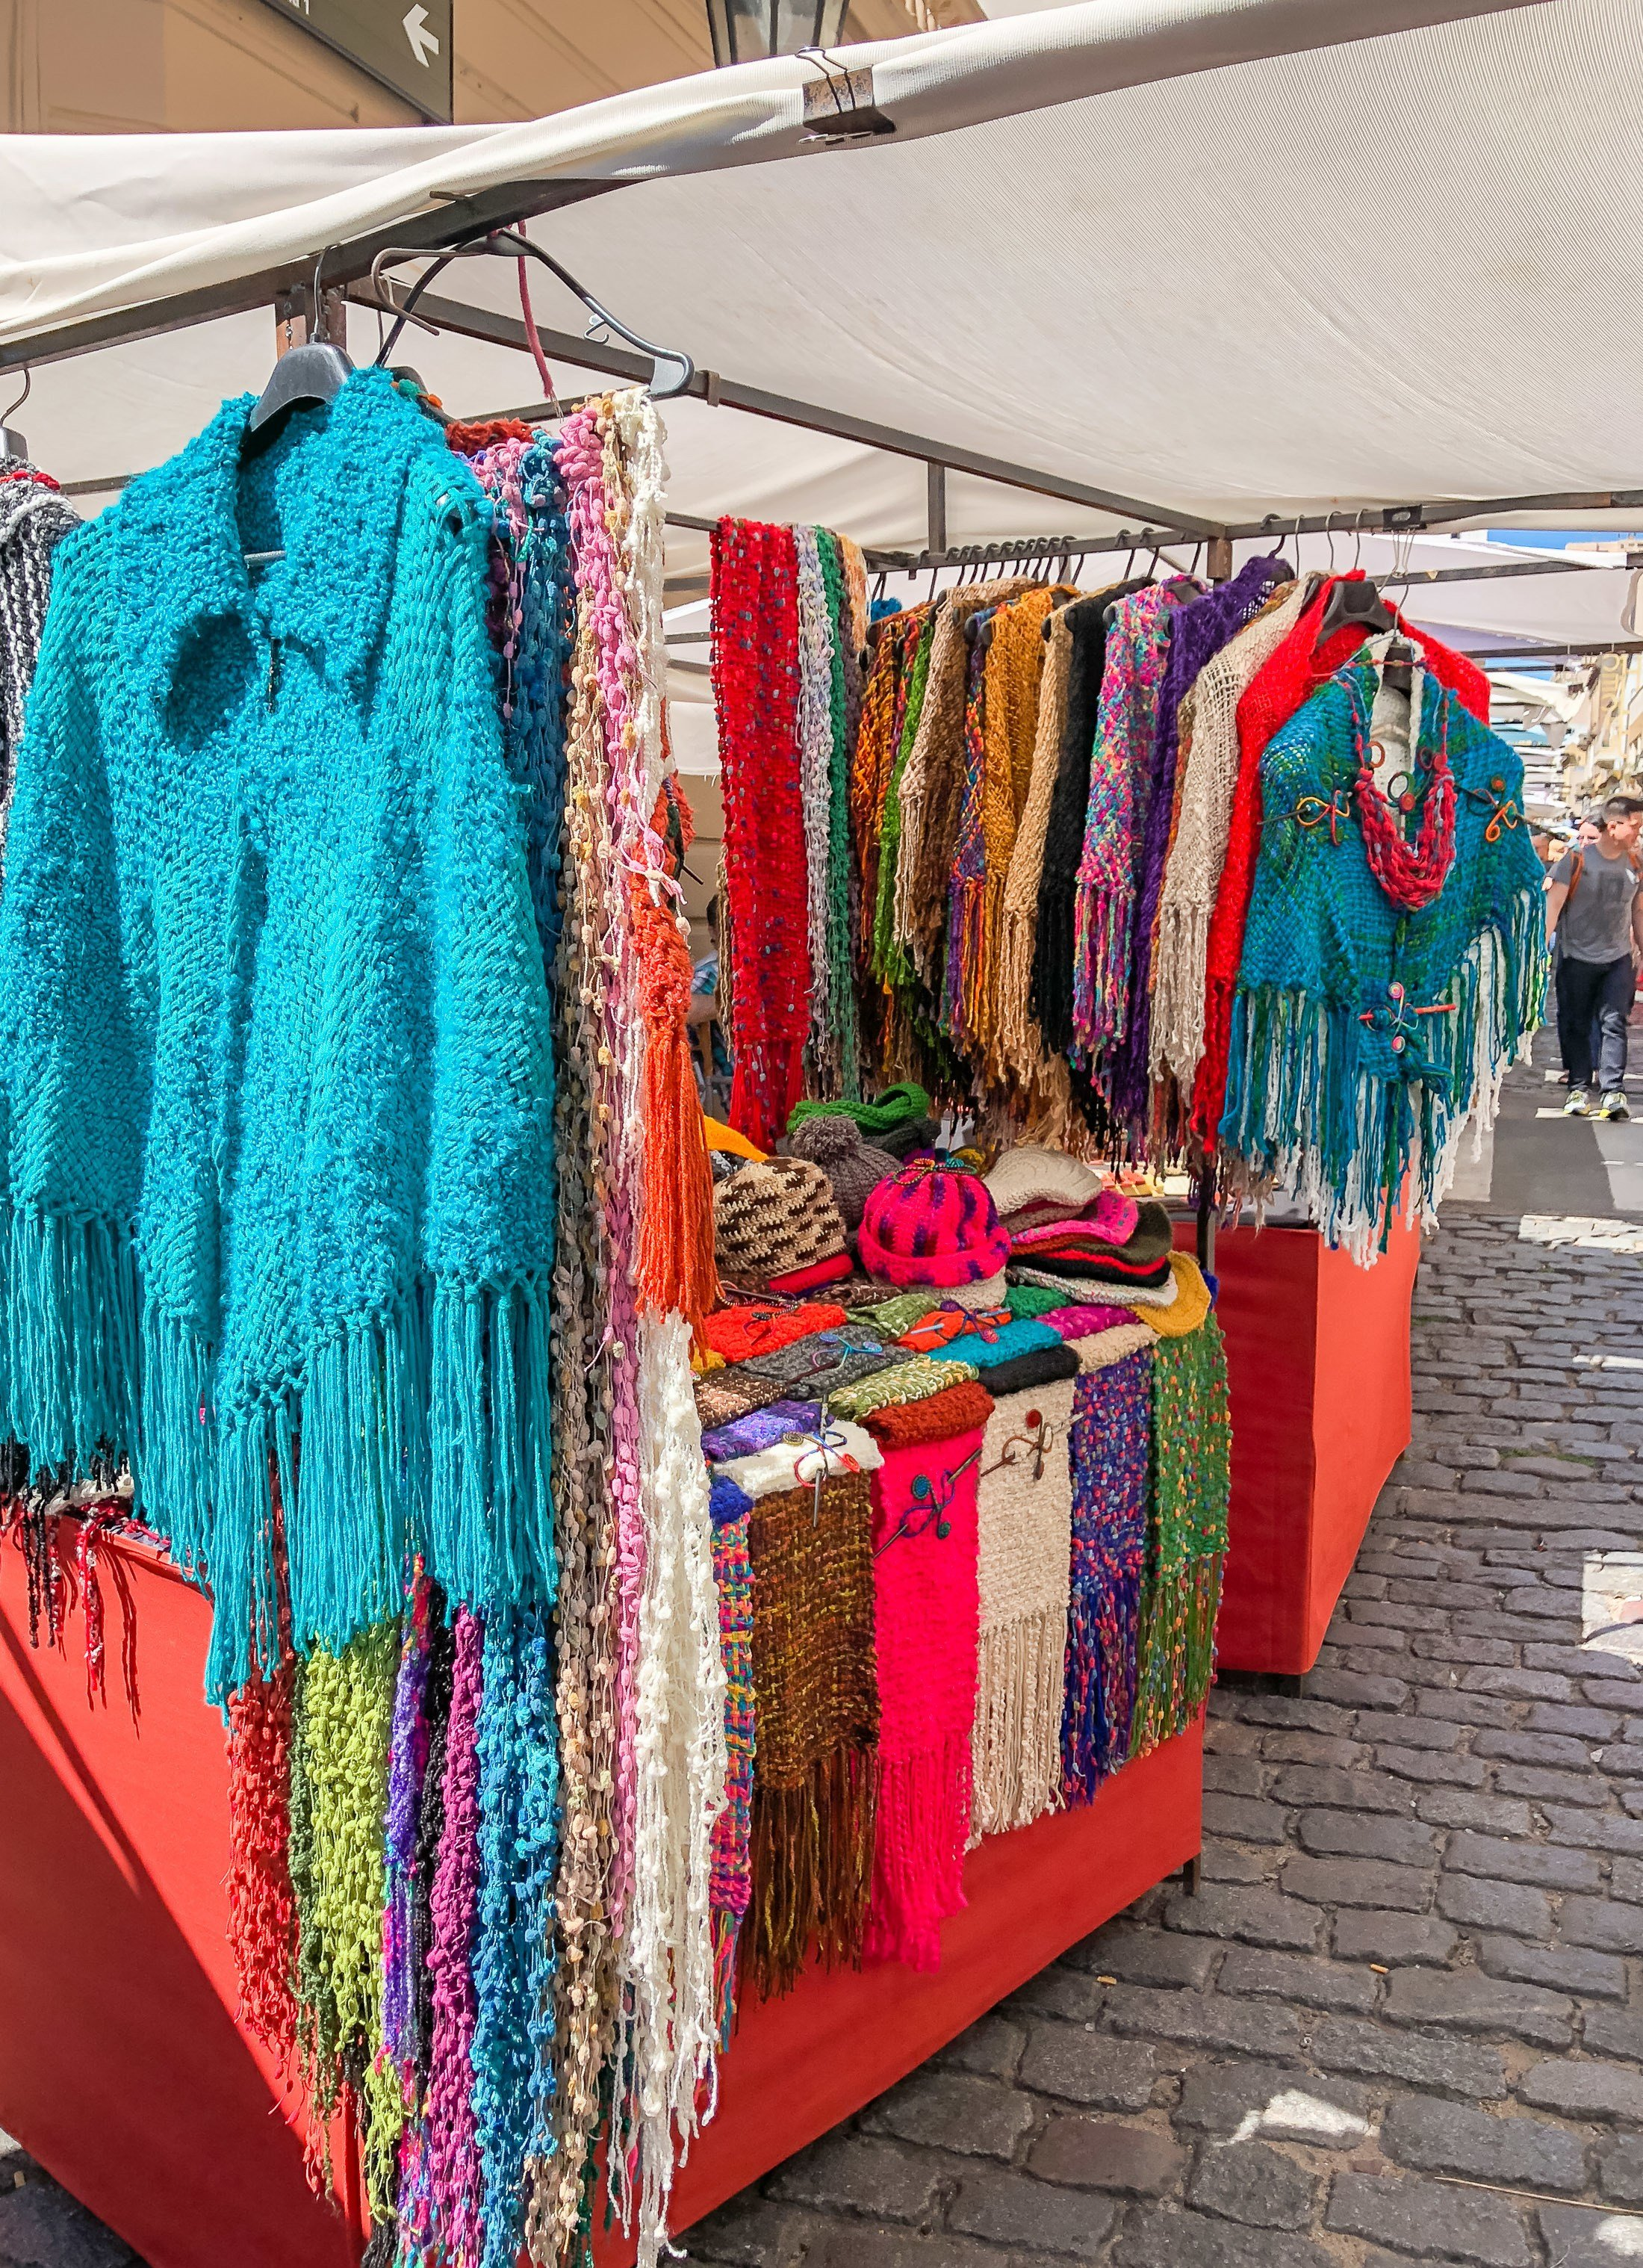 Hand-knit sweaters at the San Telmo Fair in Buenos Aires.